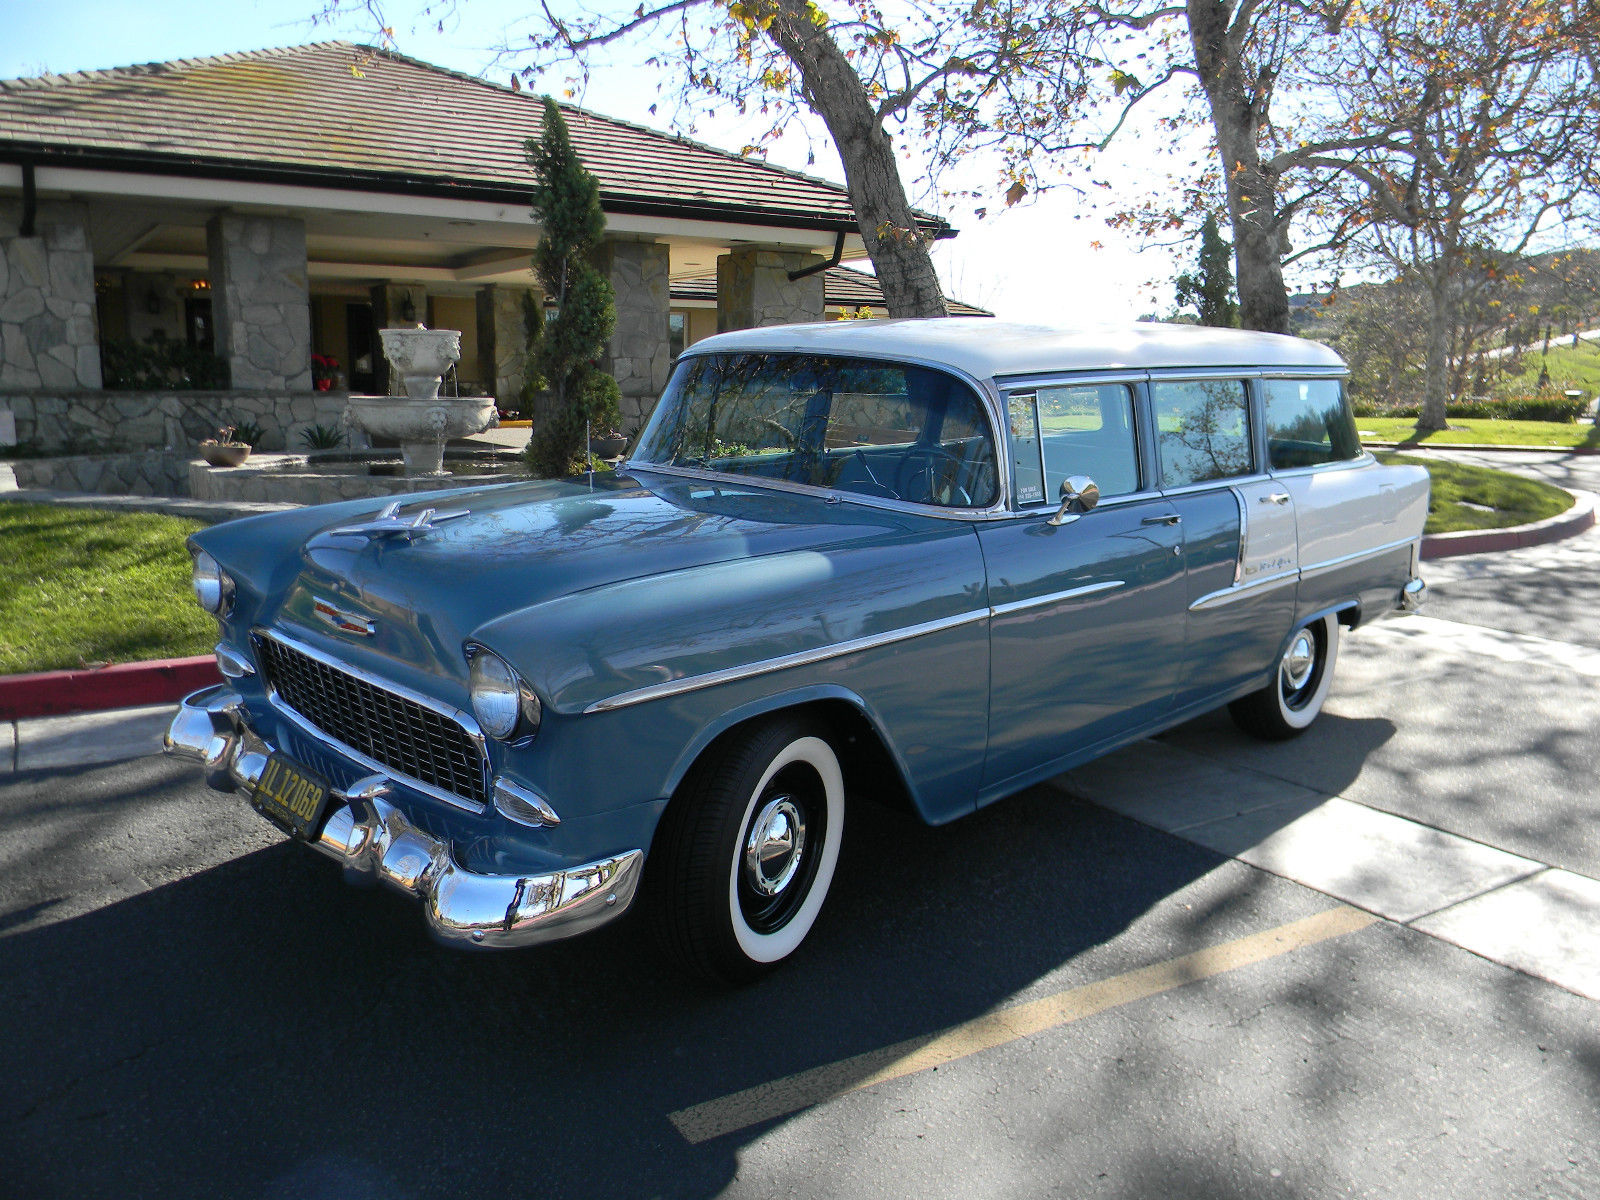 1955 Chevy Bel Air Wagon for sale in San Clemente